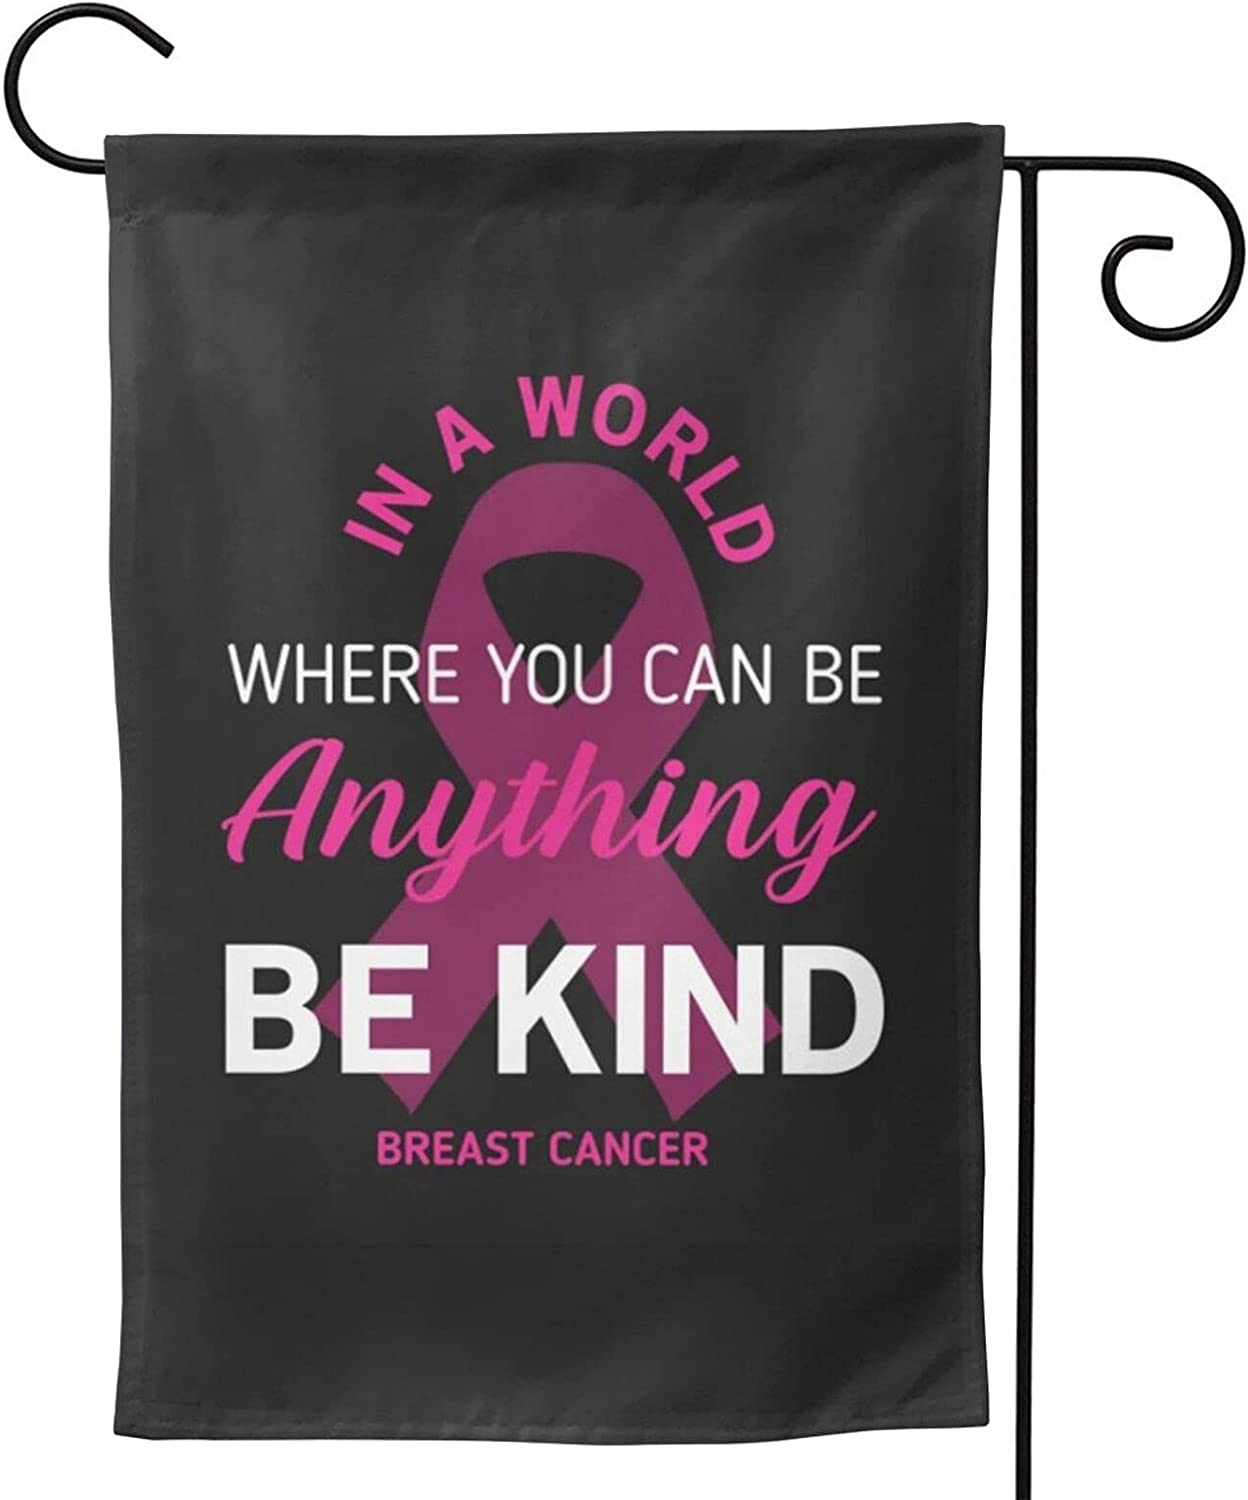 Breast Cancer Pink Ribbon Awareness Garden Flag, Double Sided Yard Lawn Flag Summer Outside Garden Flags 12.5 X 18 Inch